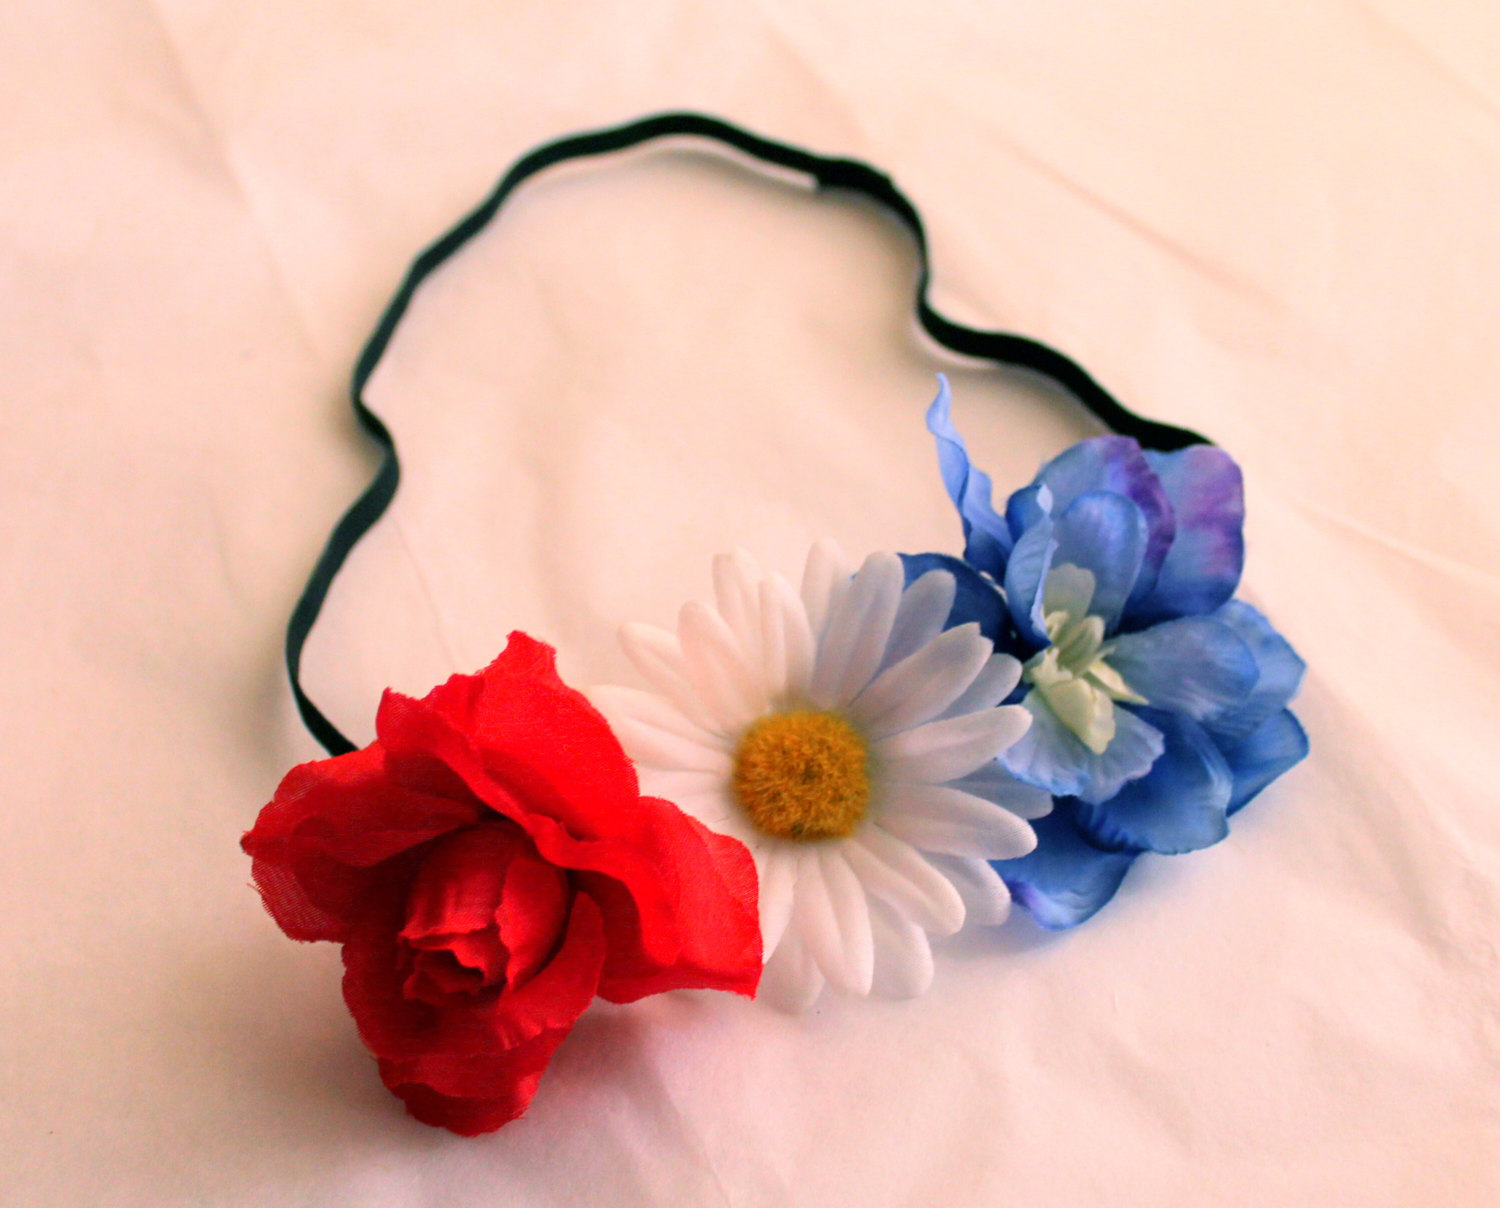 Red white and blue flower headband july 4th headpiece cute red white and blue flower headband july 4th headpiece cute adjustable flower headband 4th of july accessories cheap flower crown izmirmasajfo